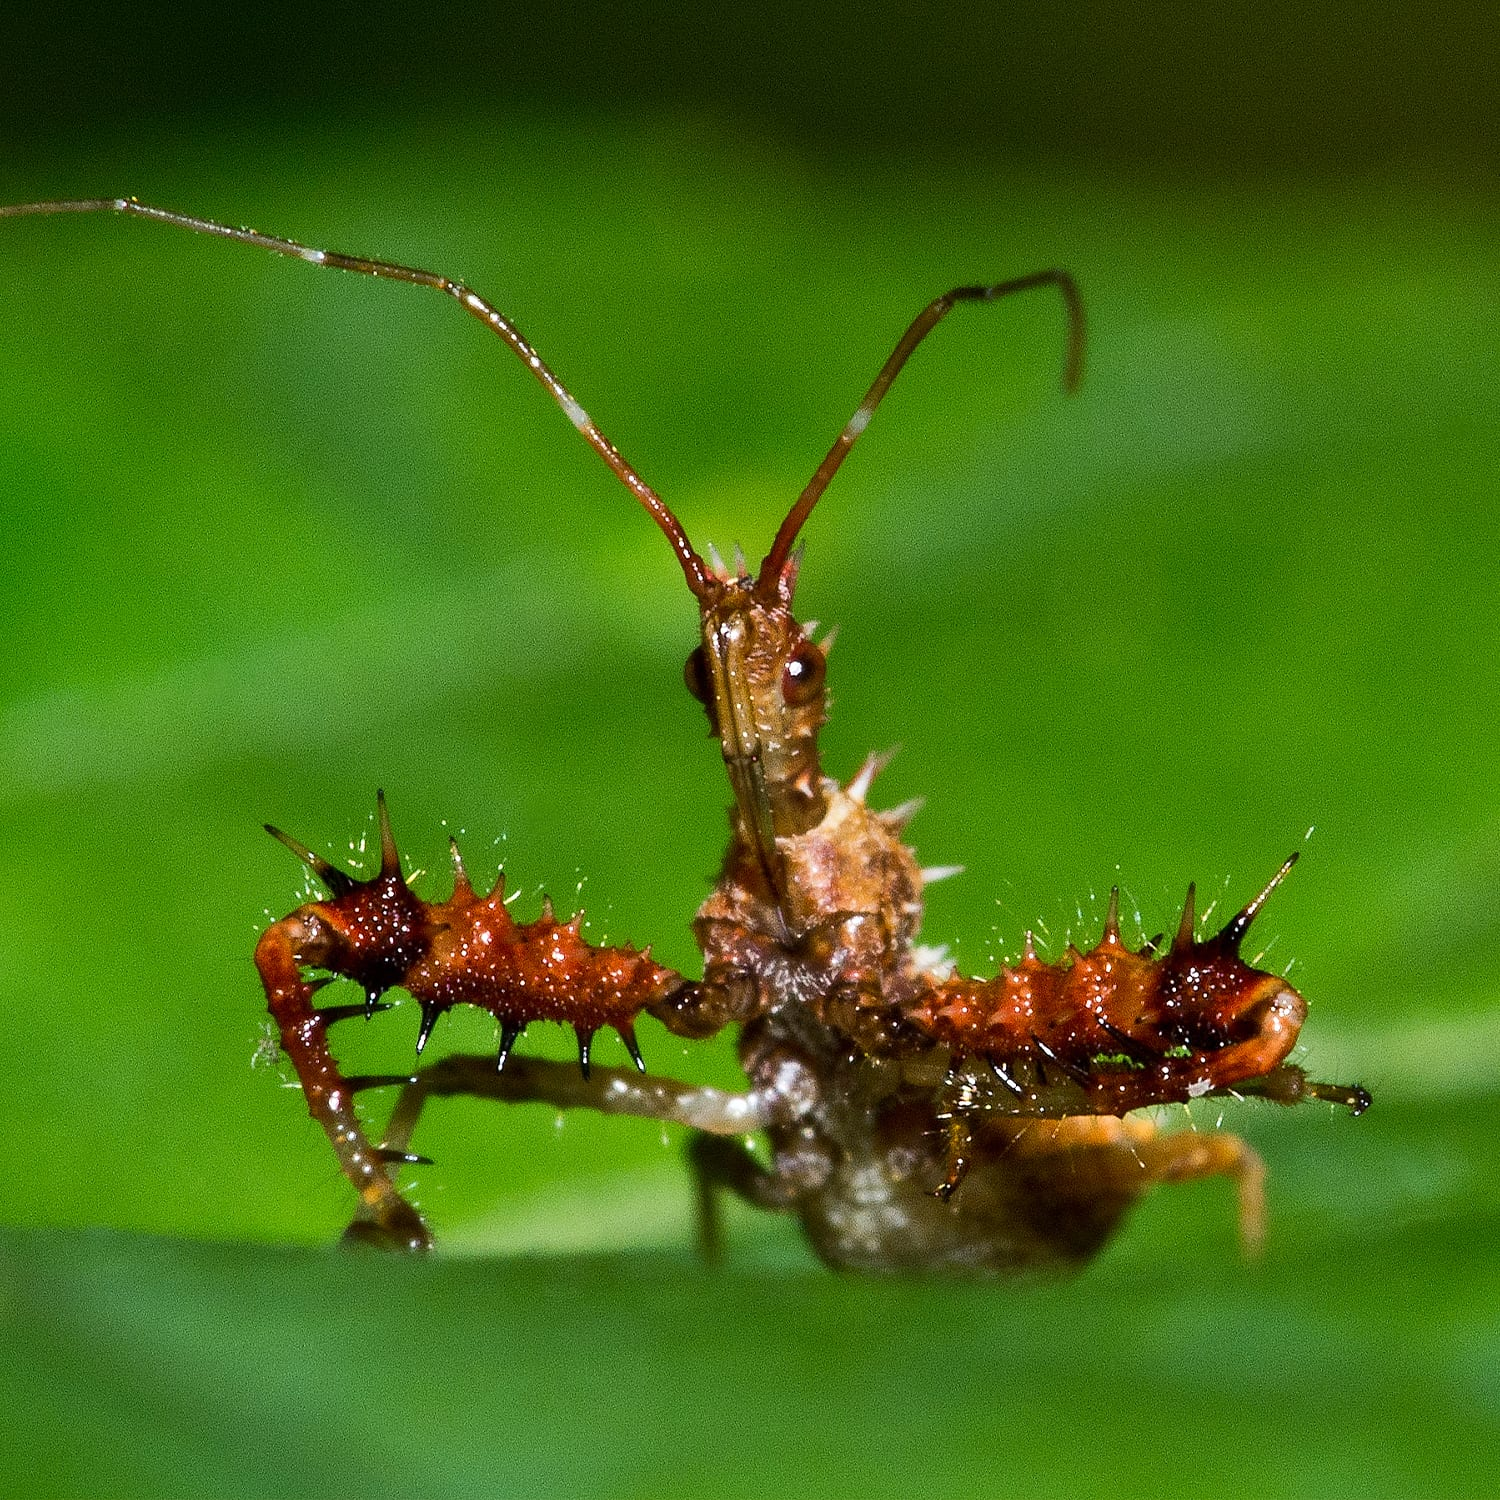 The Brutal Nature of The Assassin Bug